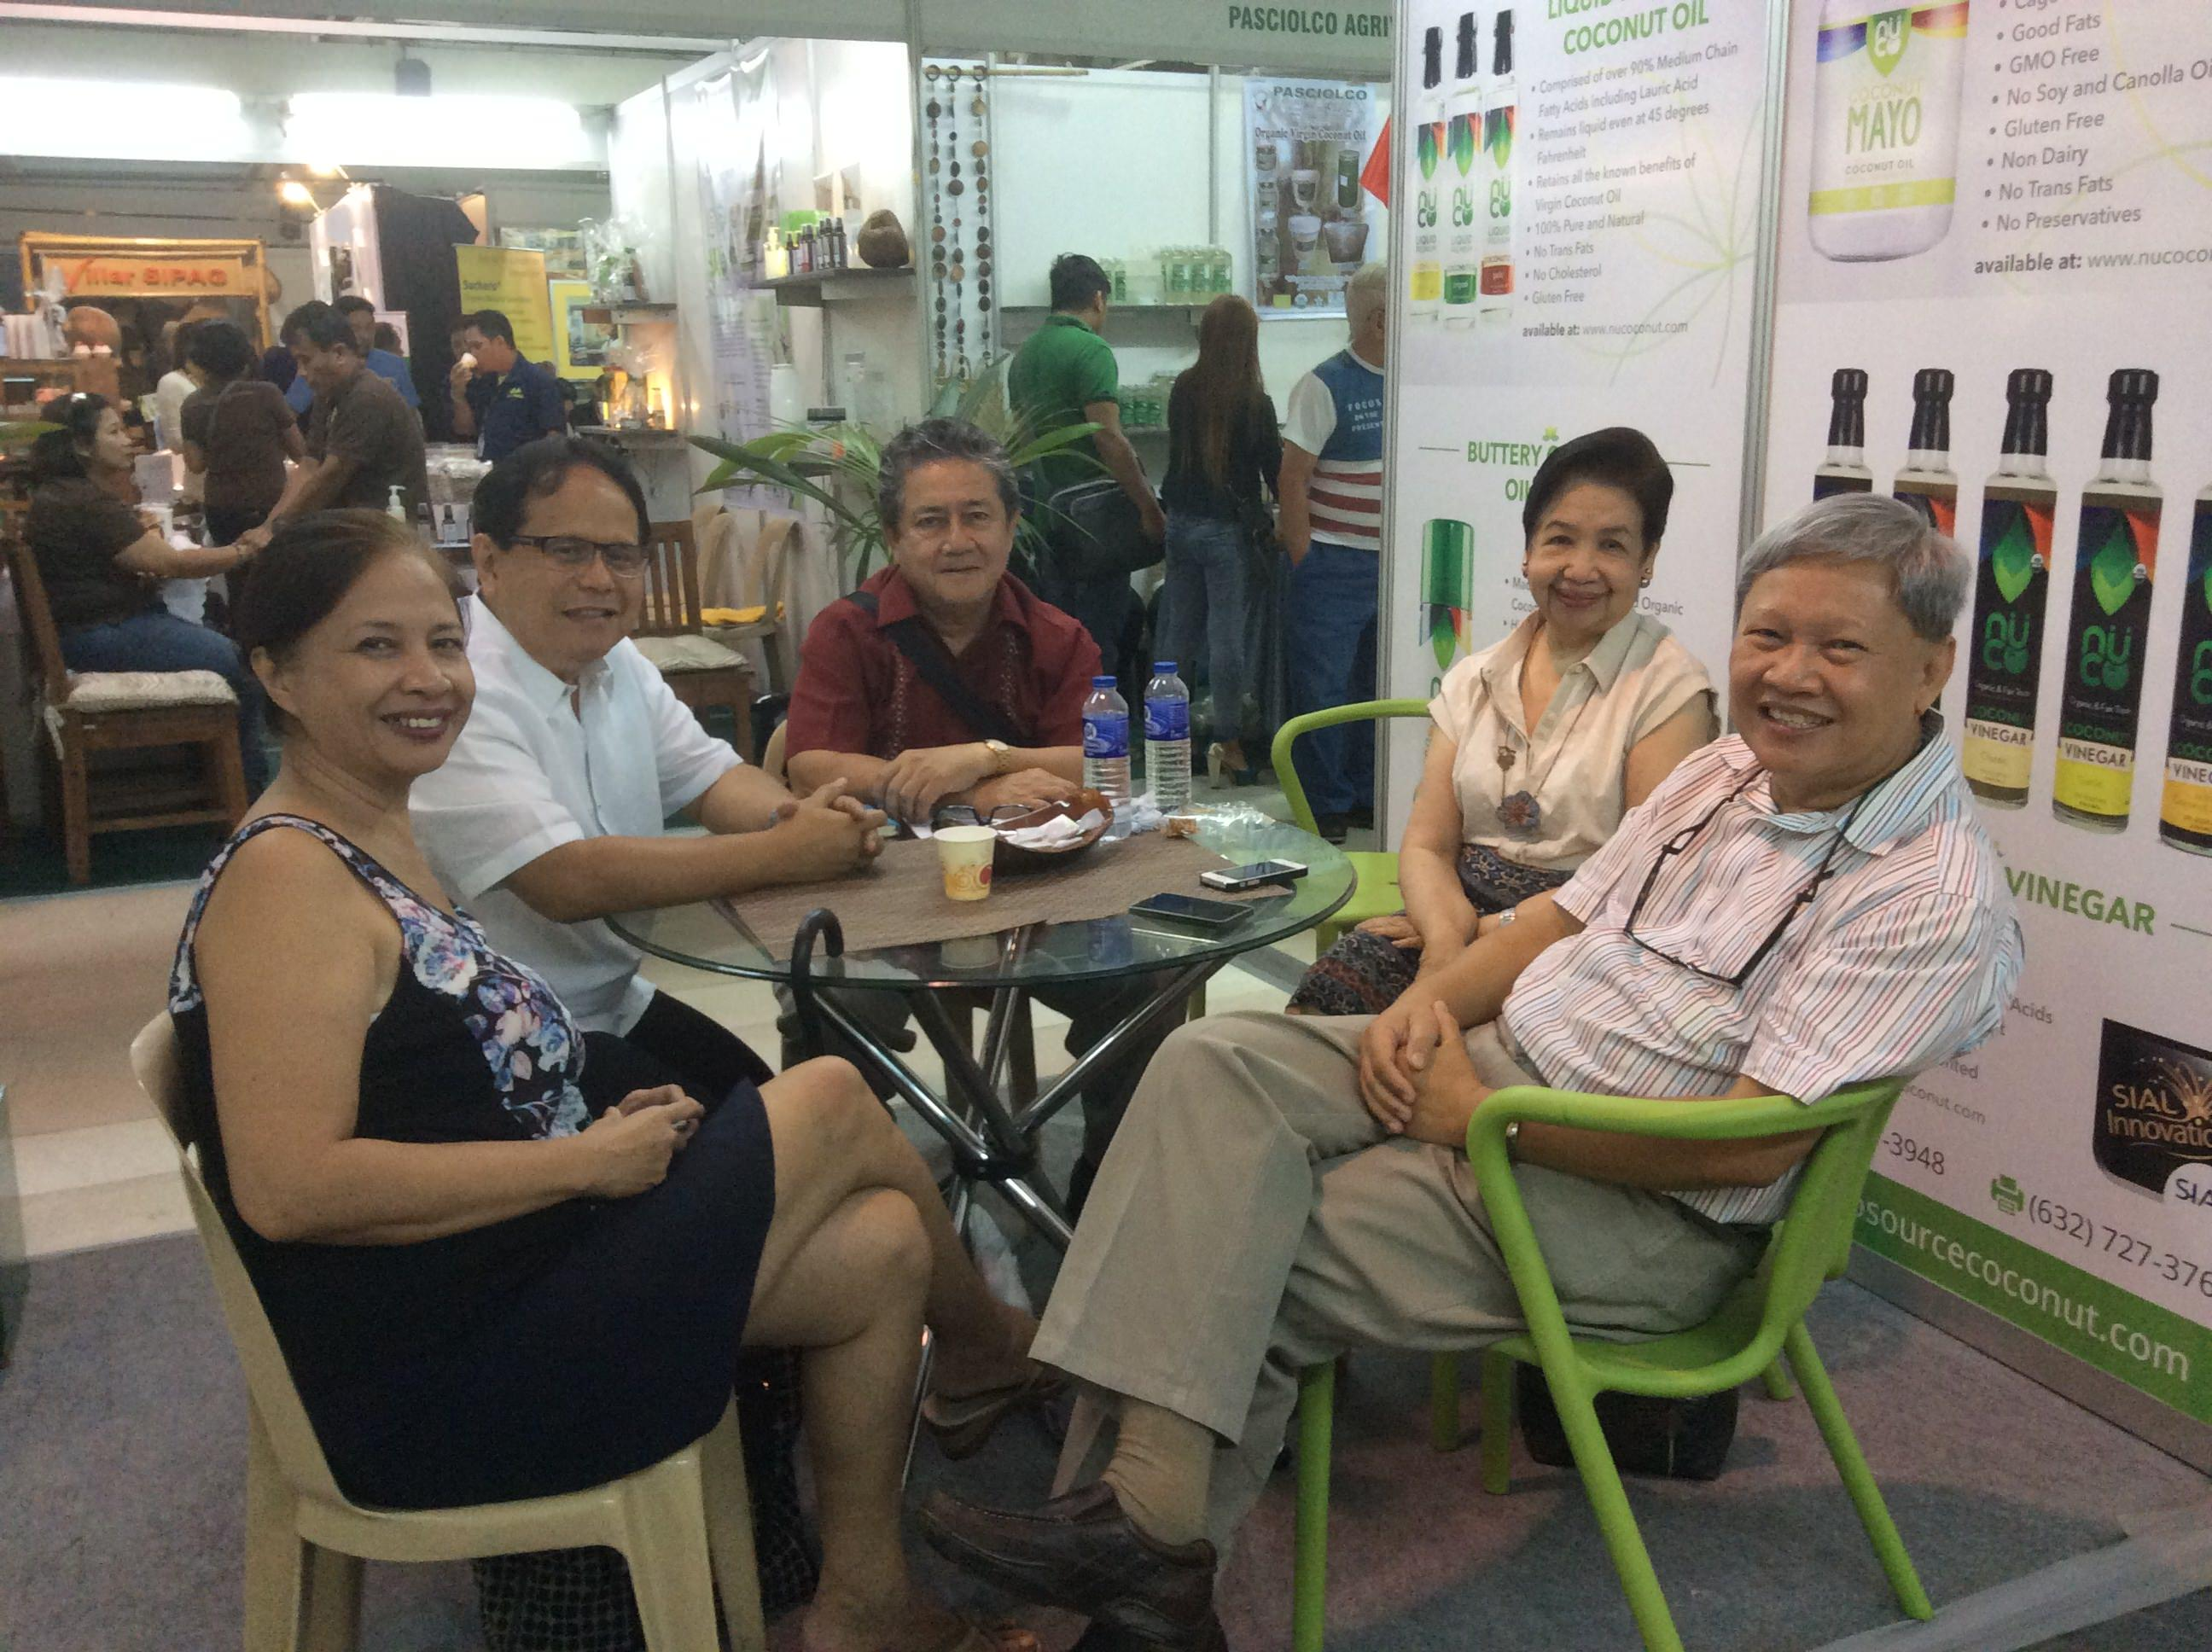 Meeting at the Booth of Prosource (Coconut Week) with PCA Administrator Romy Arancon, VCOP Chairperson Tess Santos, VCOP president Nonie Magcase, VCOP Board member Ed Deveza, VCOP Executive Director Agnes Cristobal.